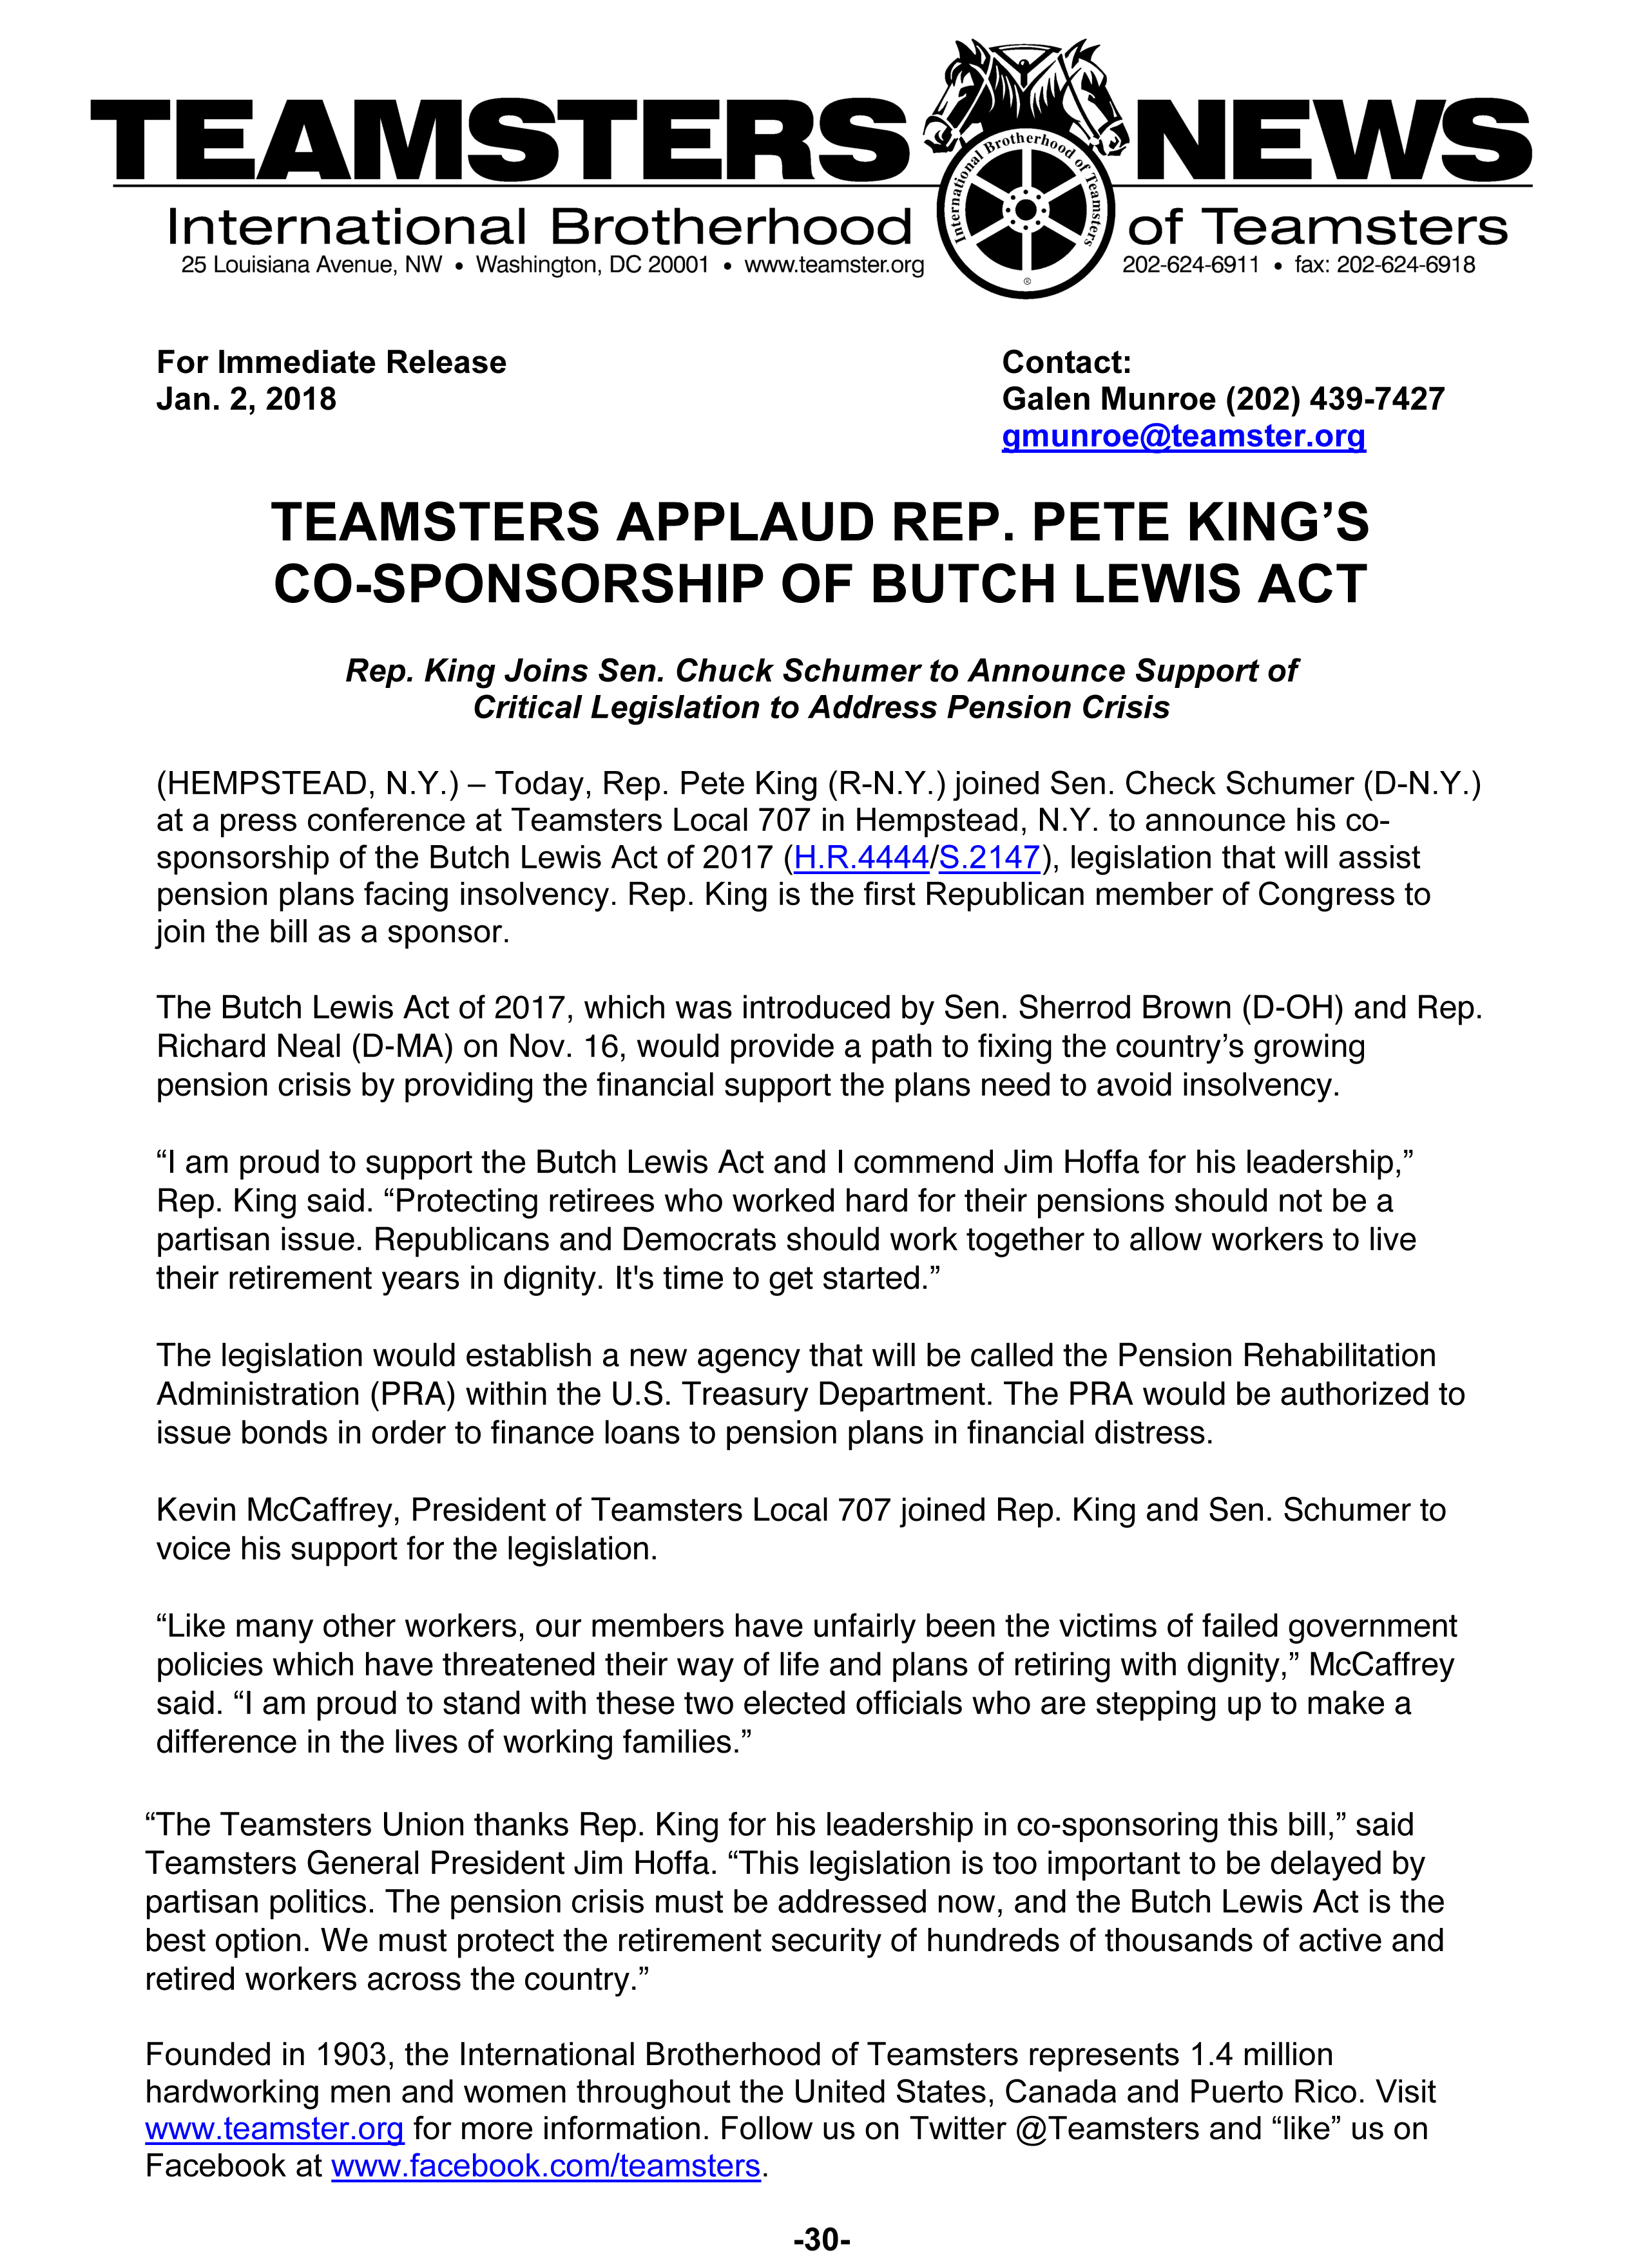 New York Rep. King-Supports_Butch_Lewis_Act